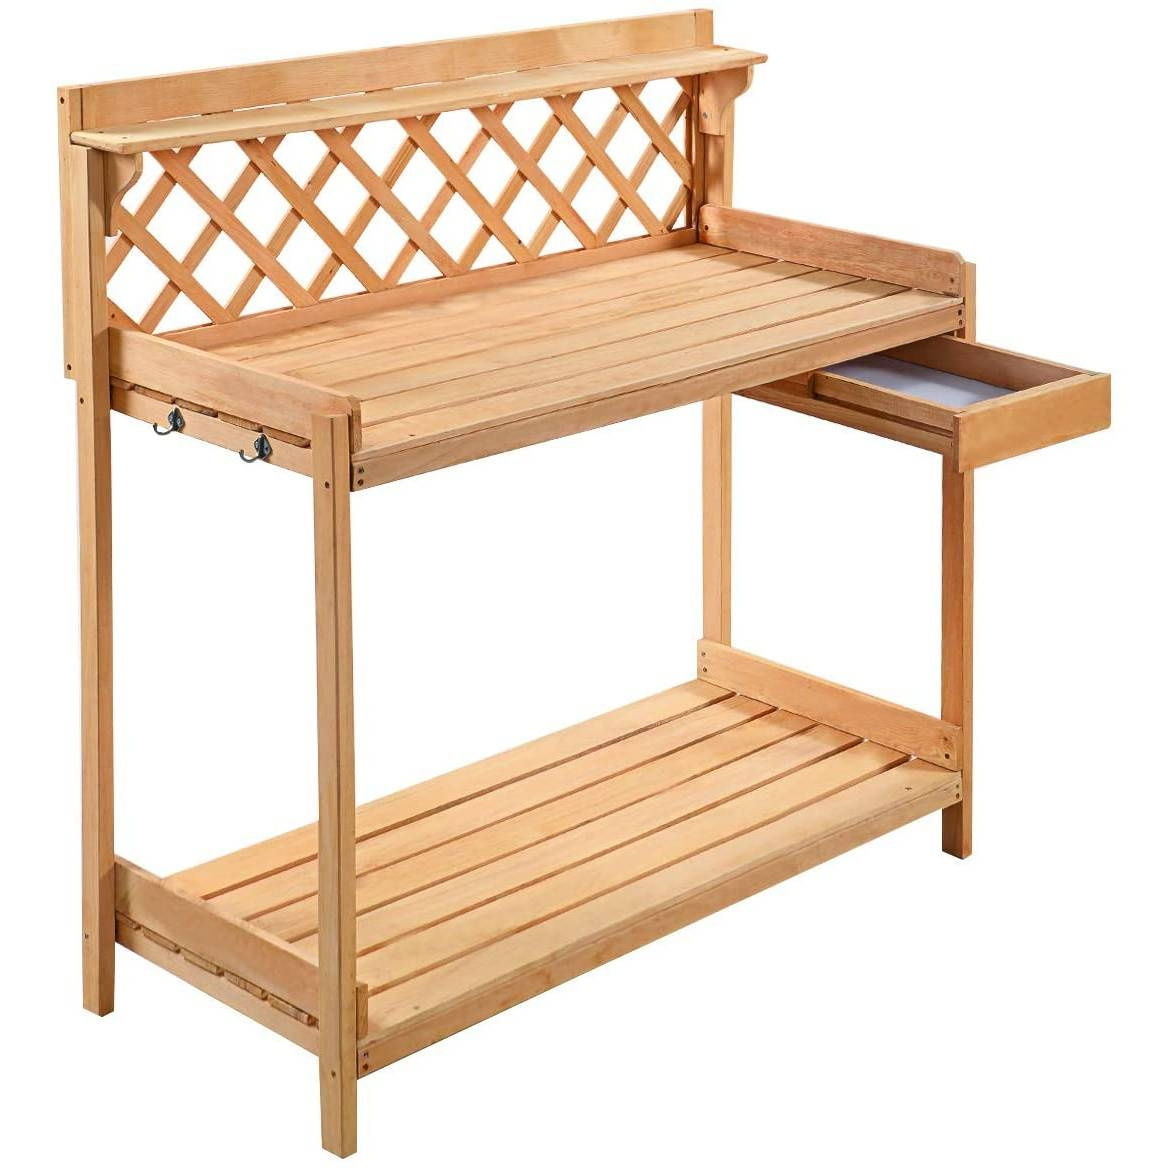 Solid Wood Garden Work Table Potting Bench In Natural Finish |  FastFurnishings.com